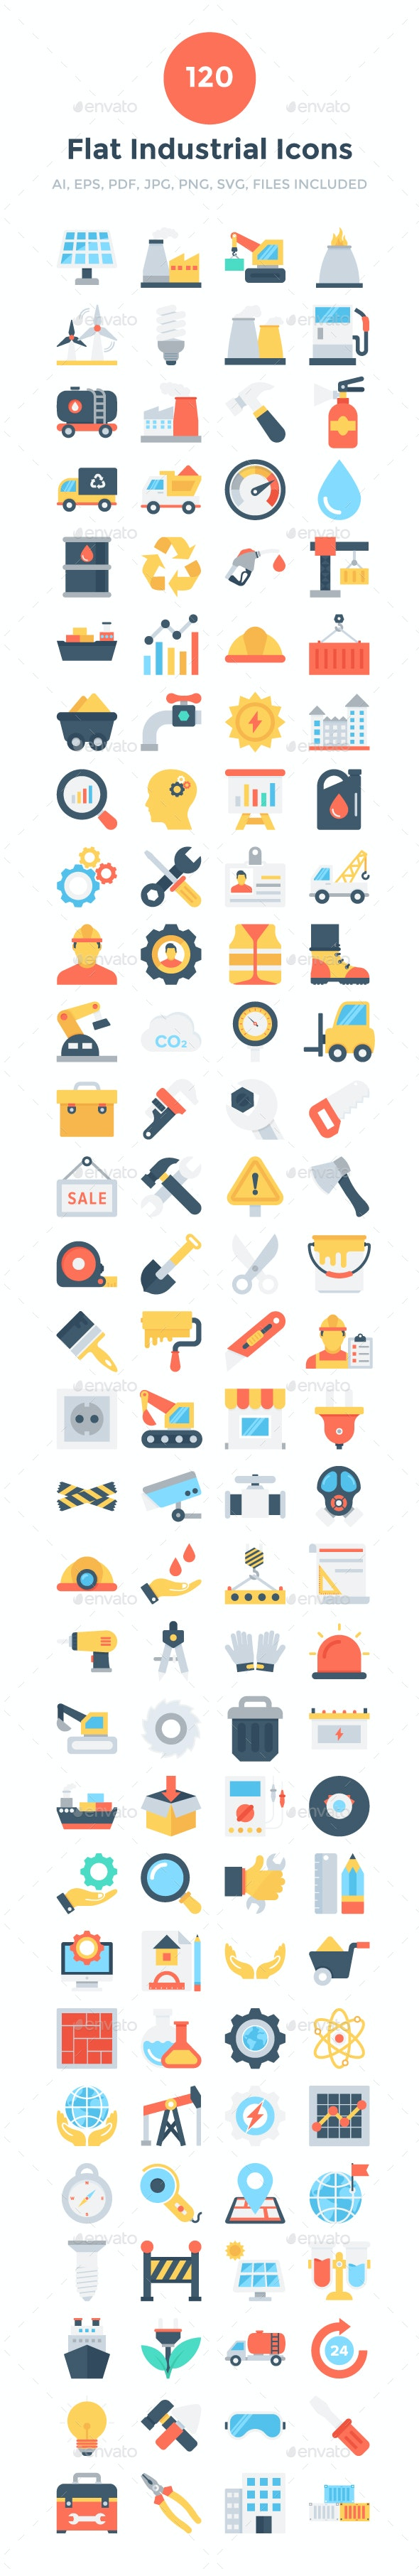 120 Flat Industrial Icons - Icons